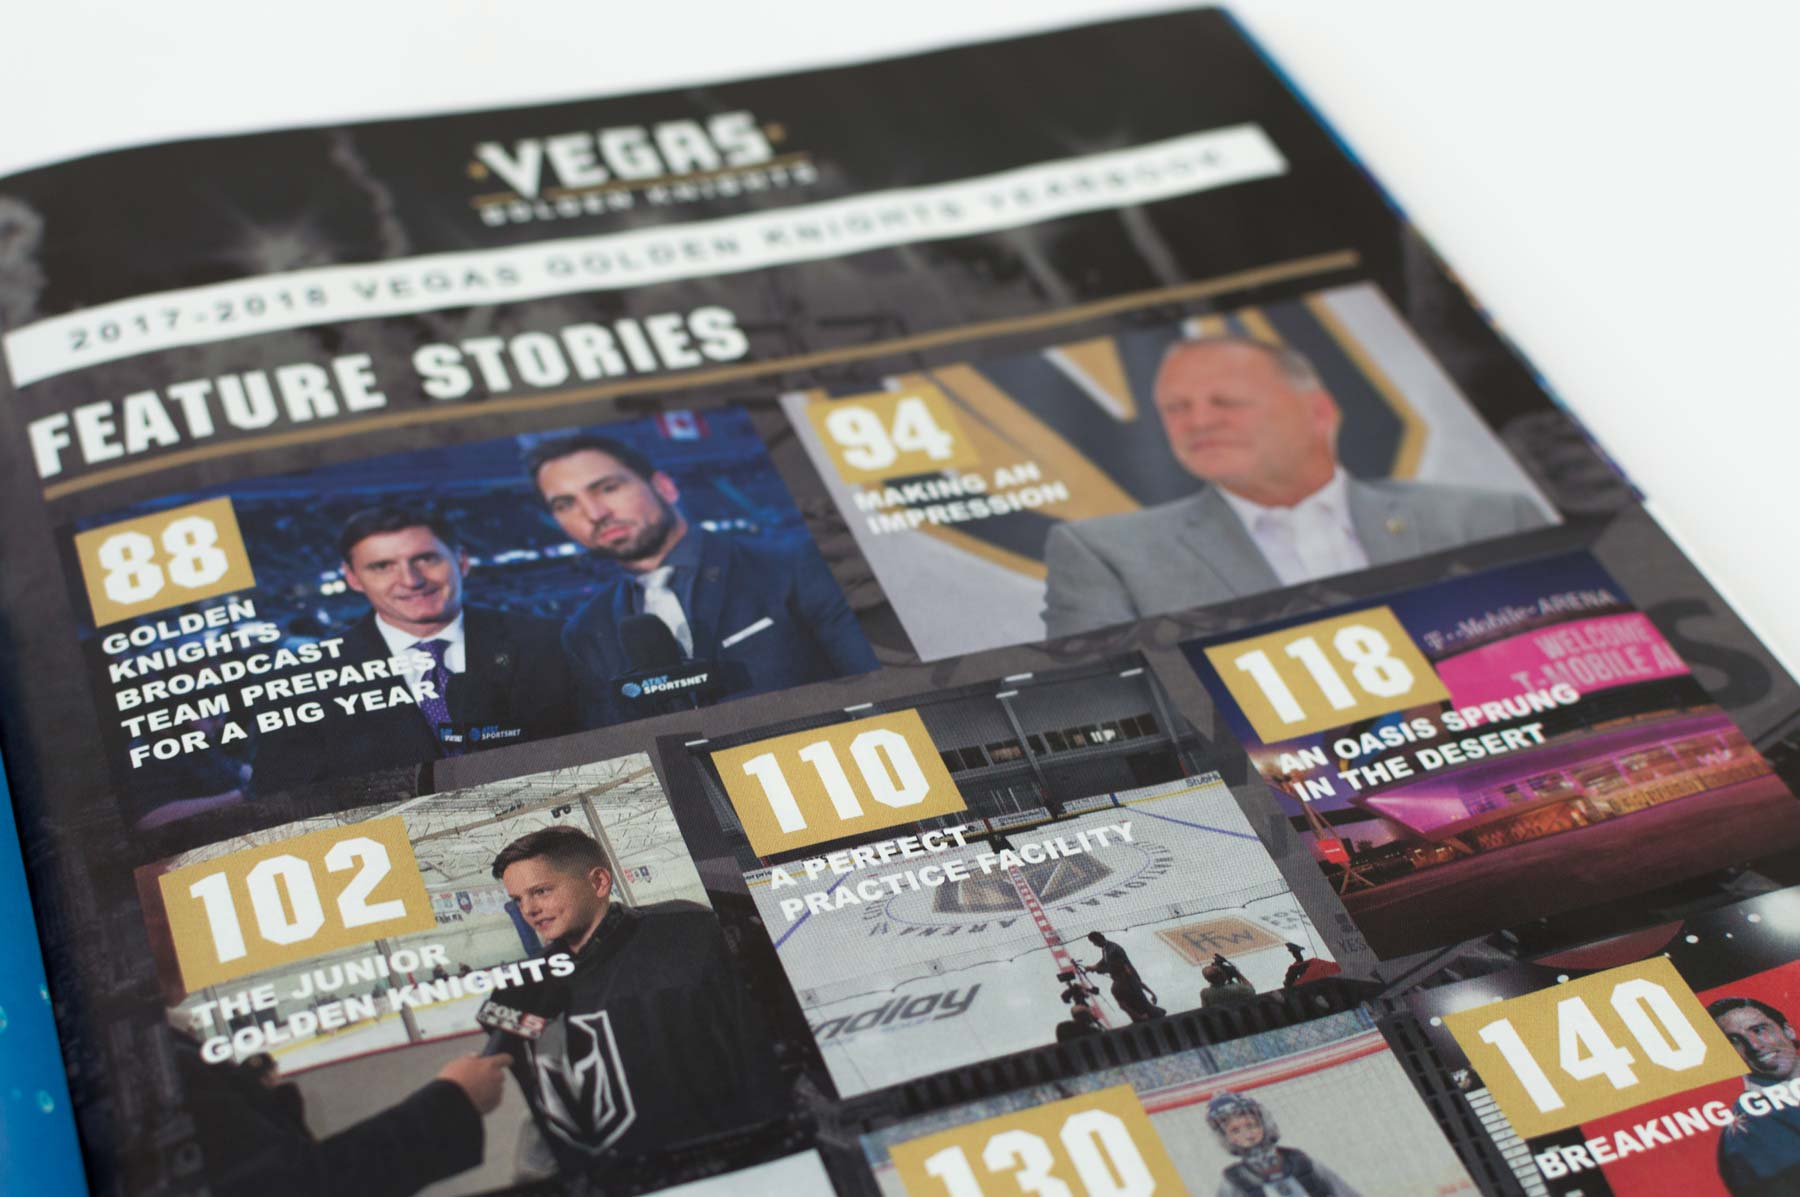 The index page in the 2017-18 Vegas Golden Knights Yearbook.